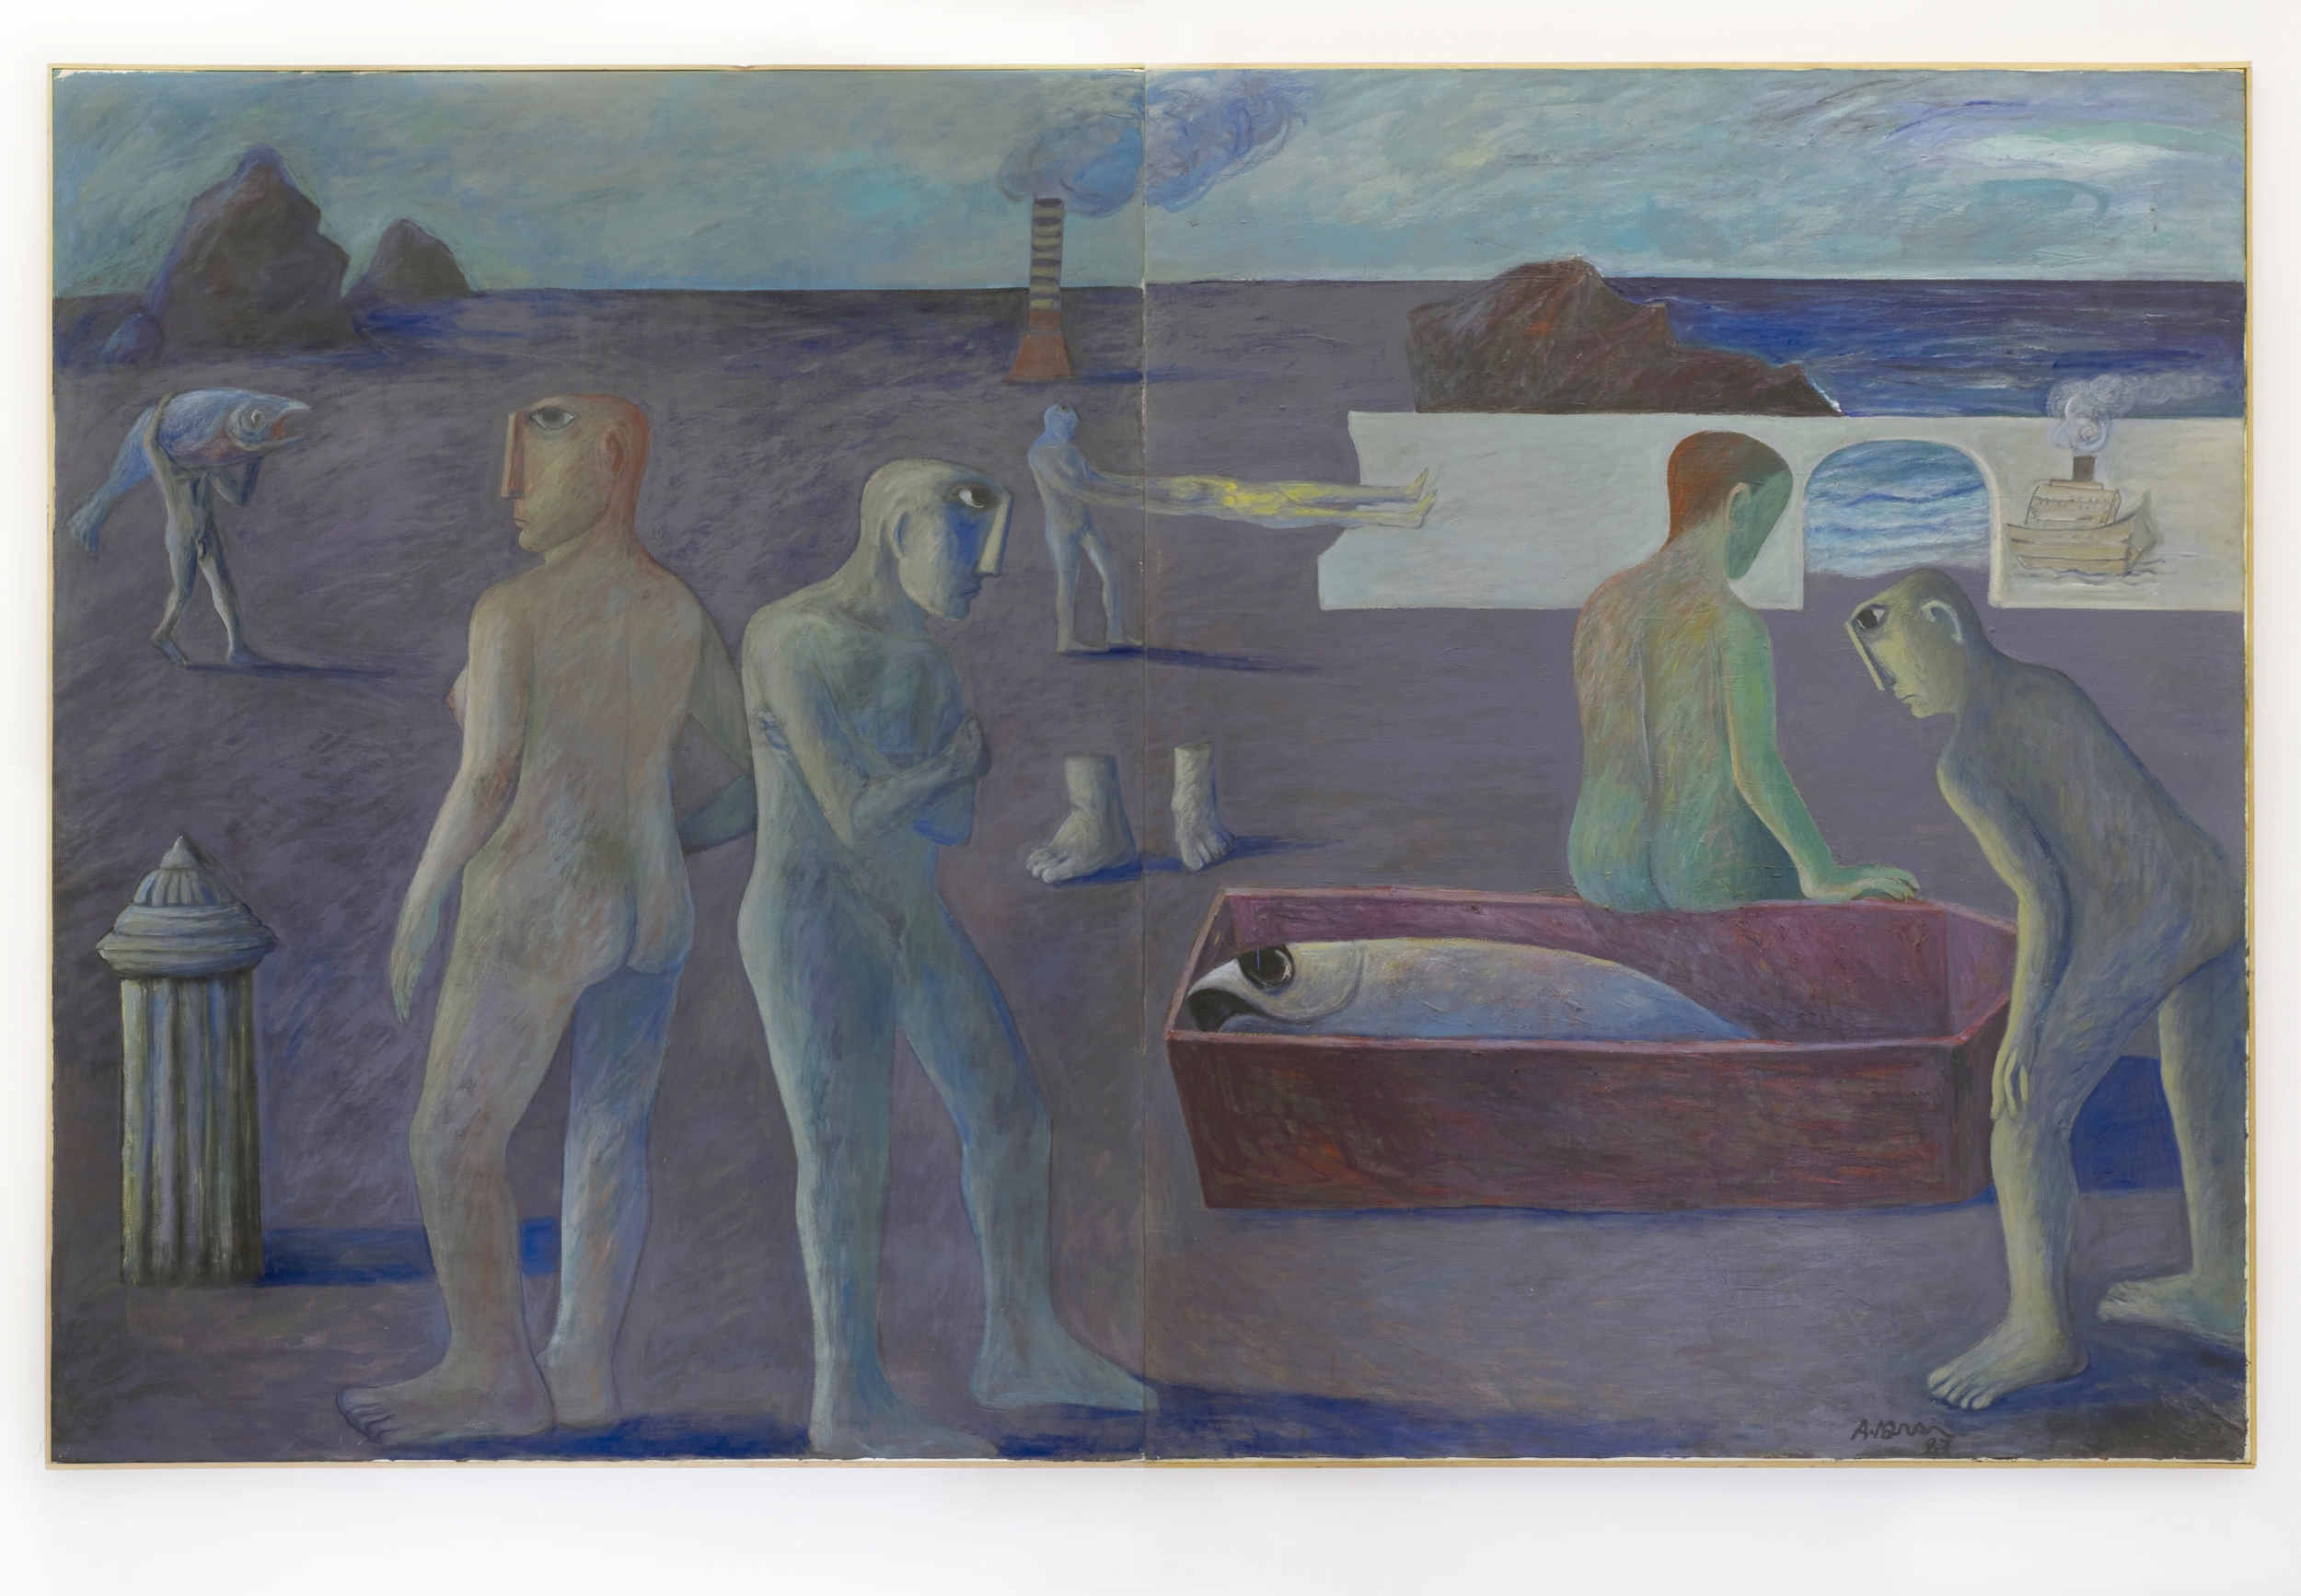 Ahmed Morsi, Untitled (Seaside Diptych), 1987, Acrylic on canvas, 360 x 135 cm. Image courtesy of the artist and Gypsum Gallery